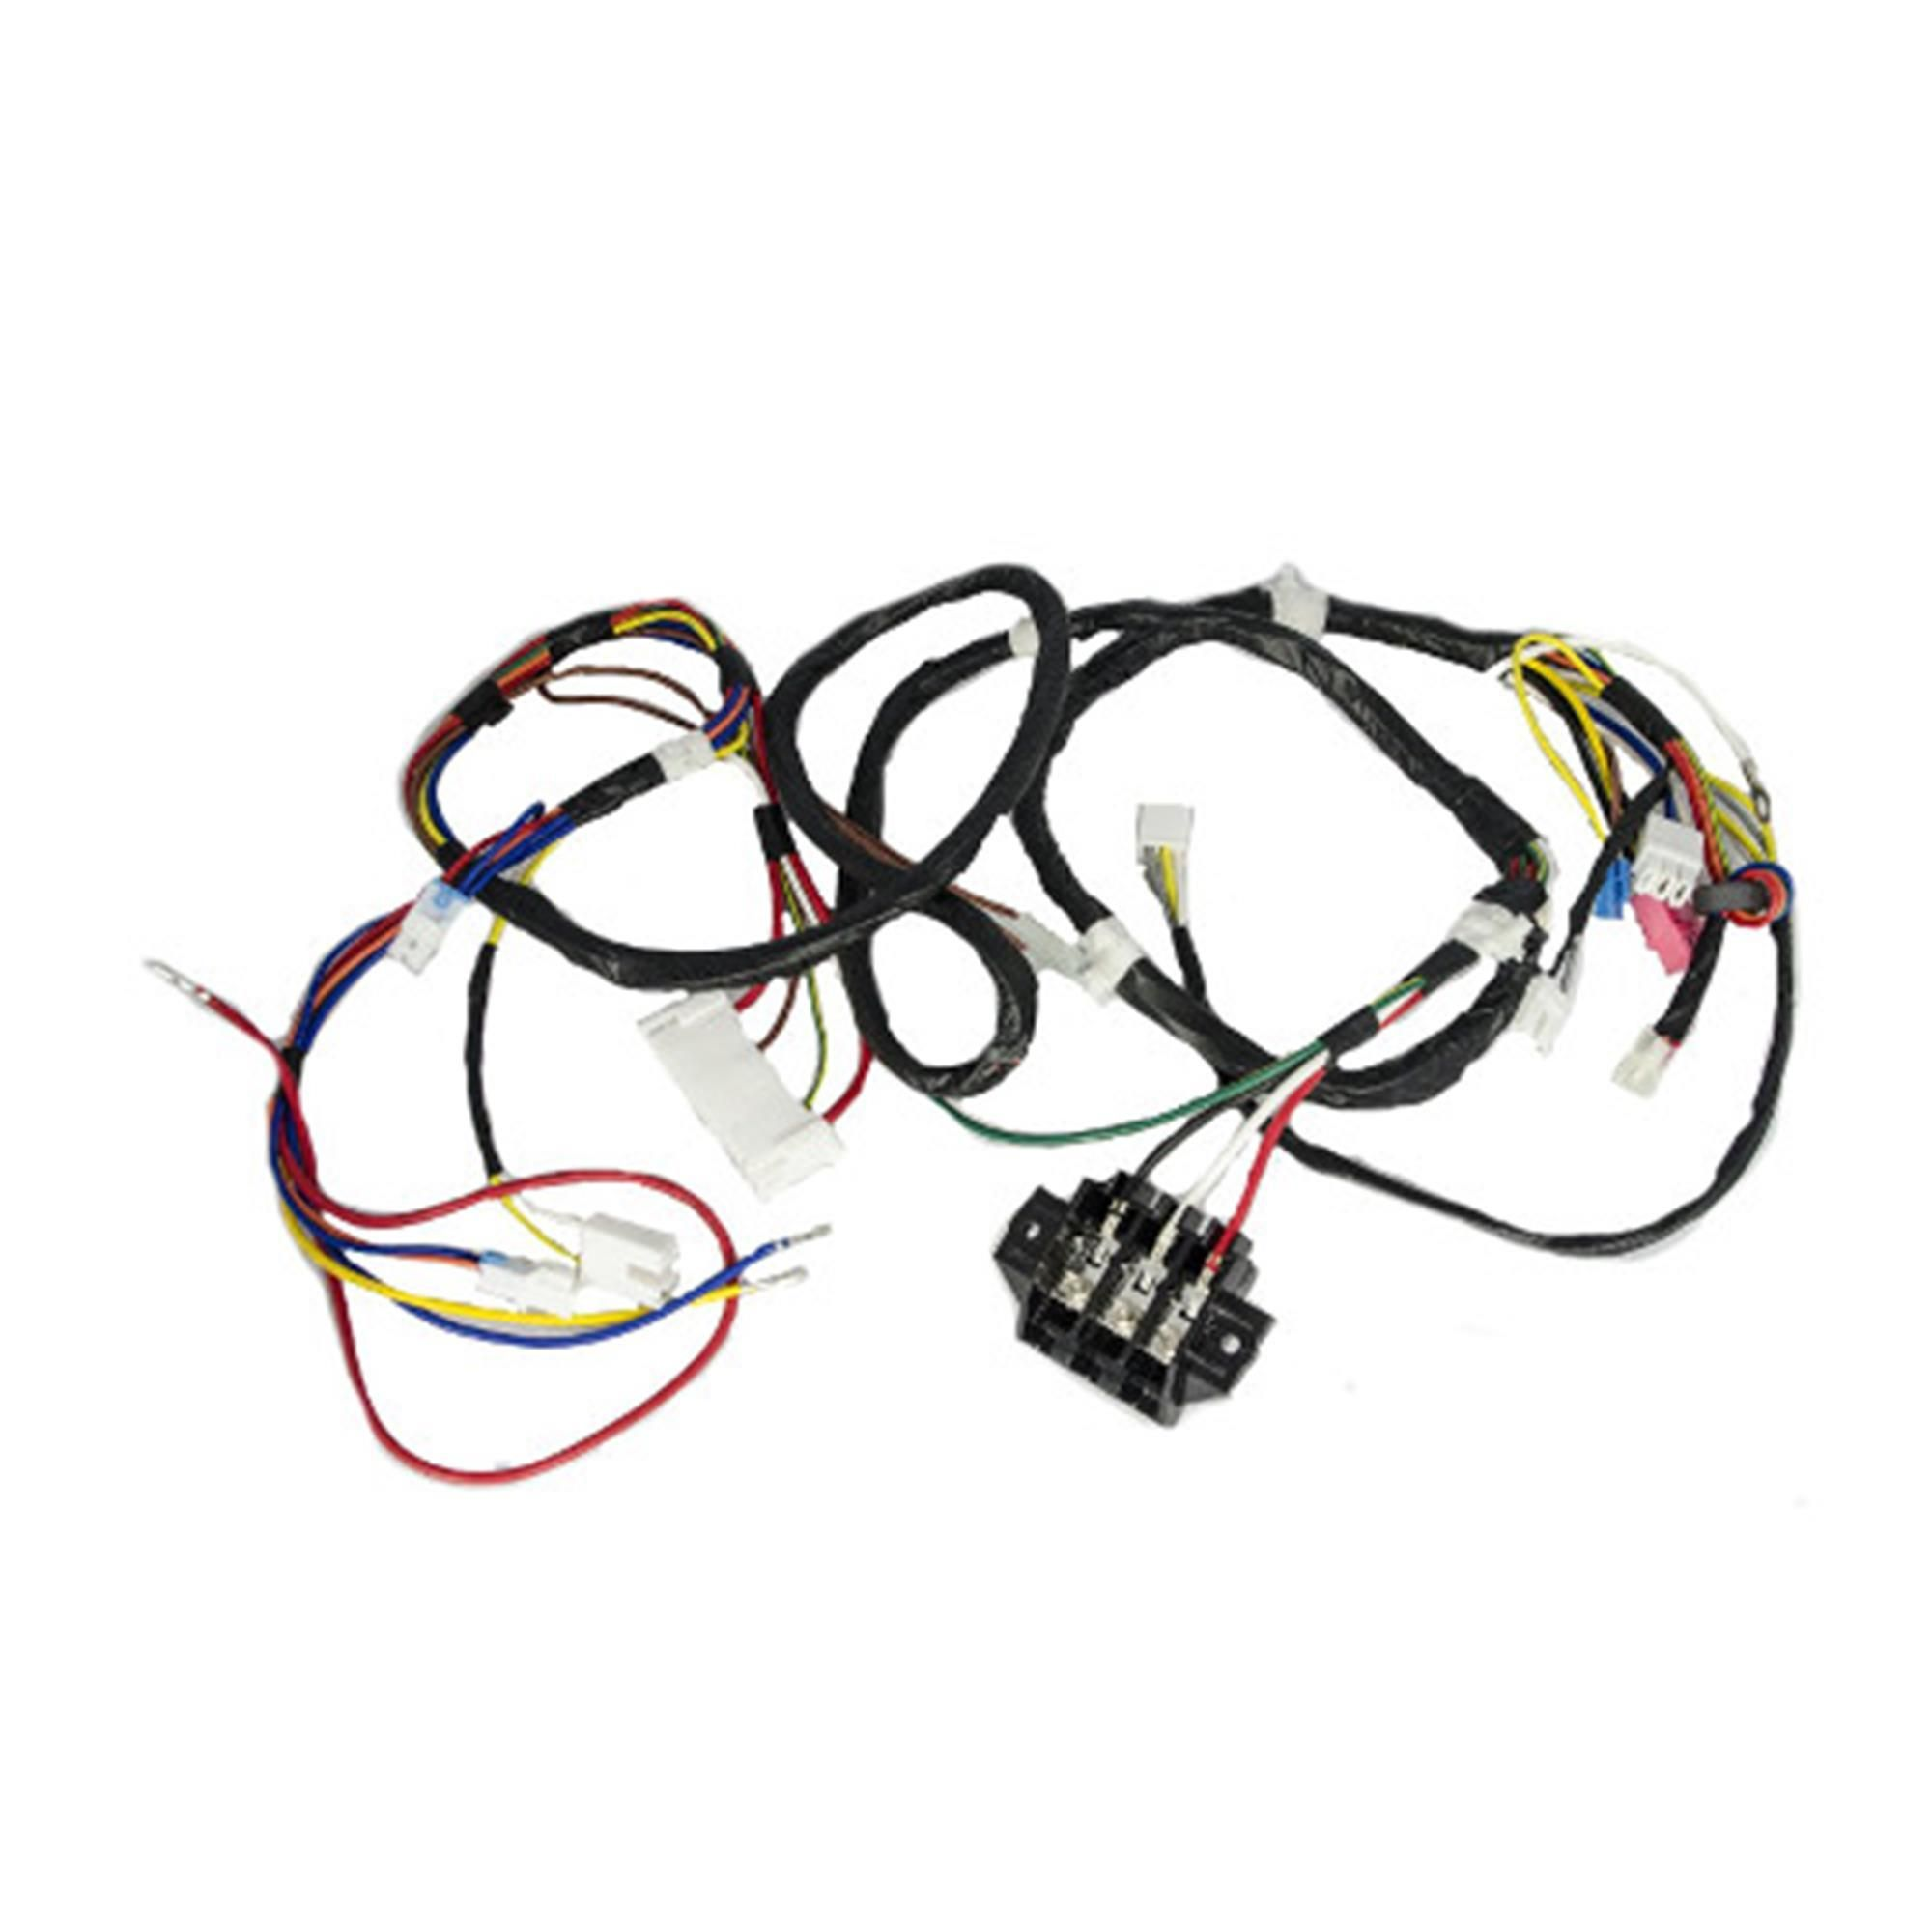 6877el1007a For Lg Clothes Dryer Wire Harness Products Pinterest Wiring